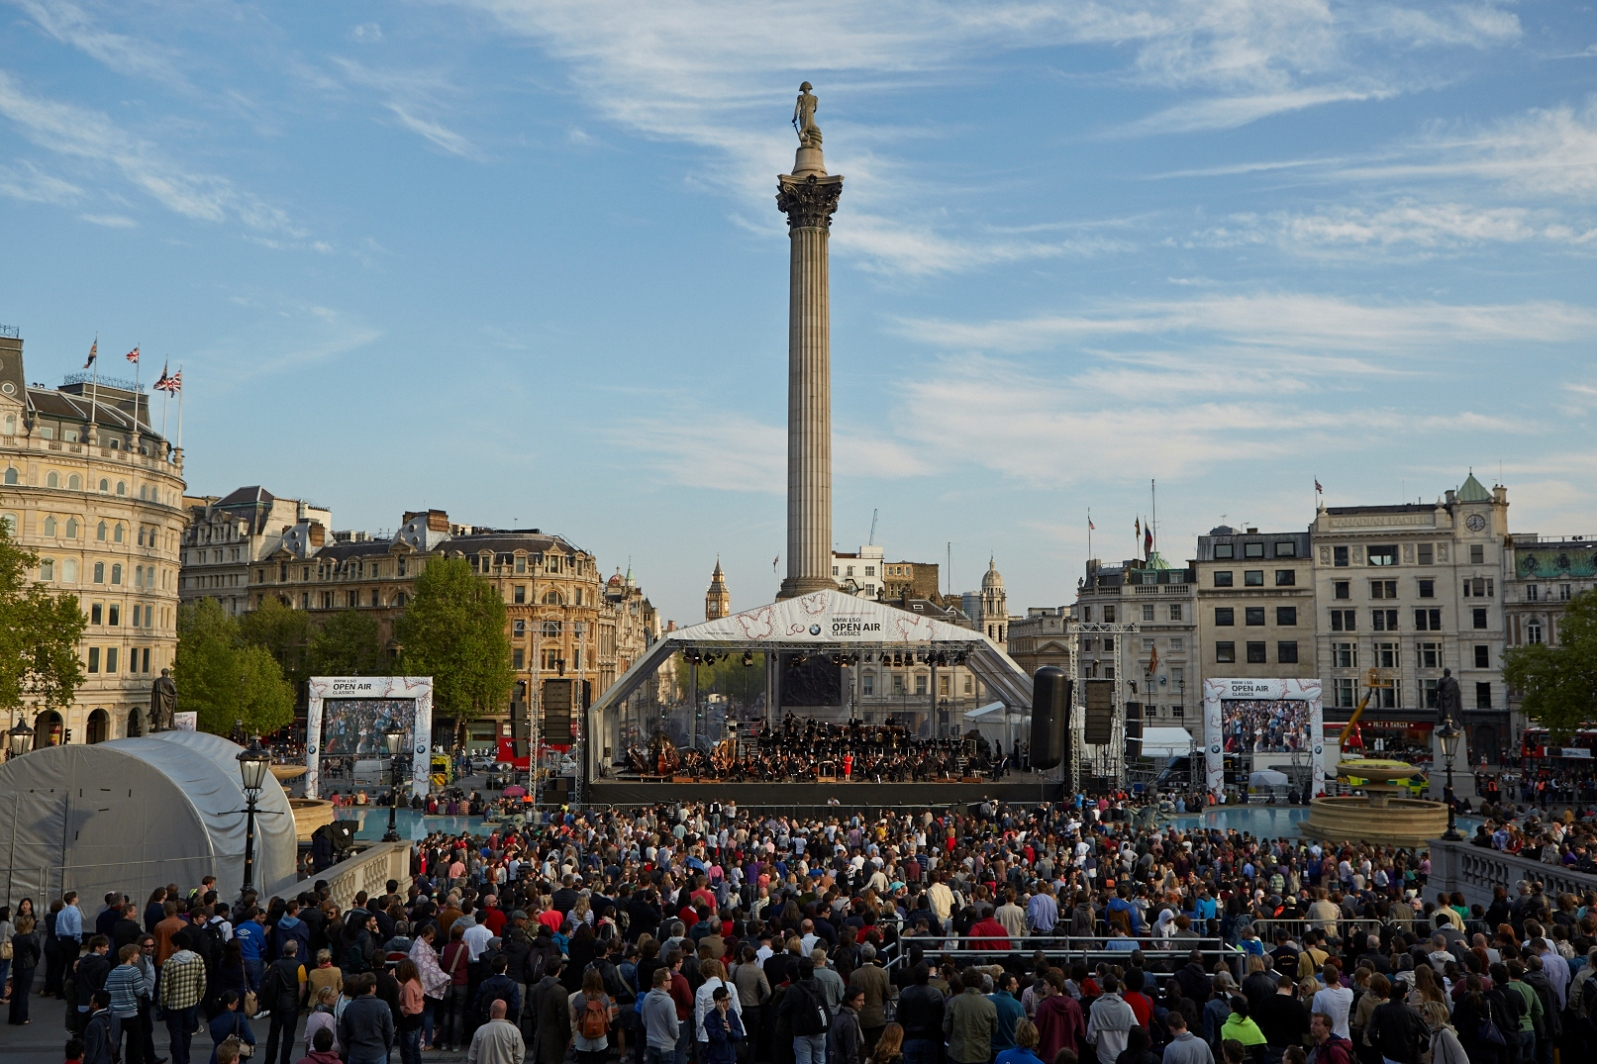 LSO/Gergiev in Trafalgar Square, photo by Kevin Leighton